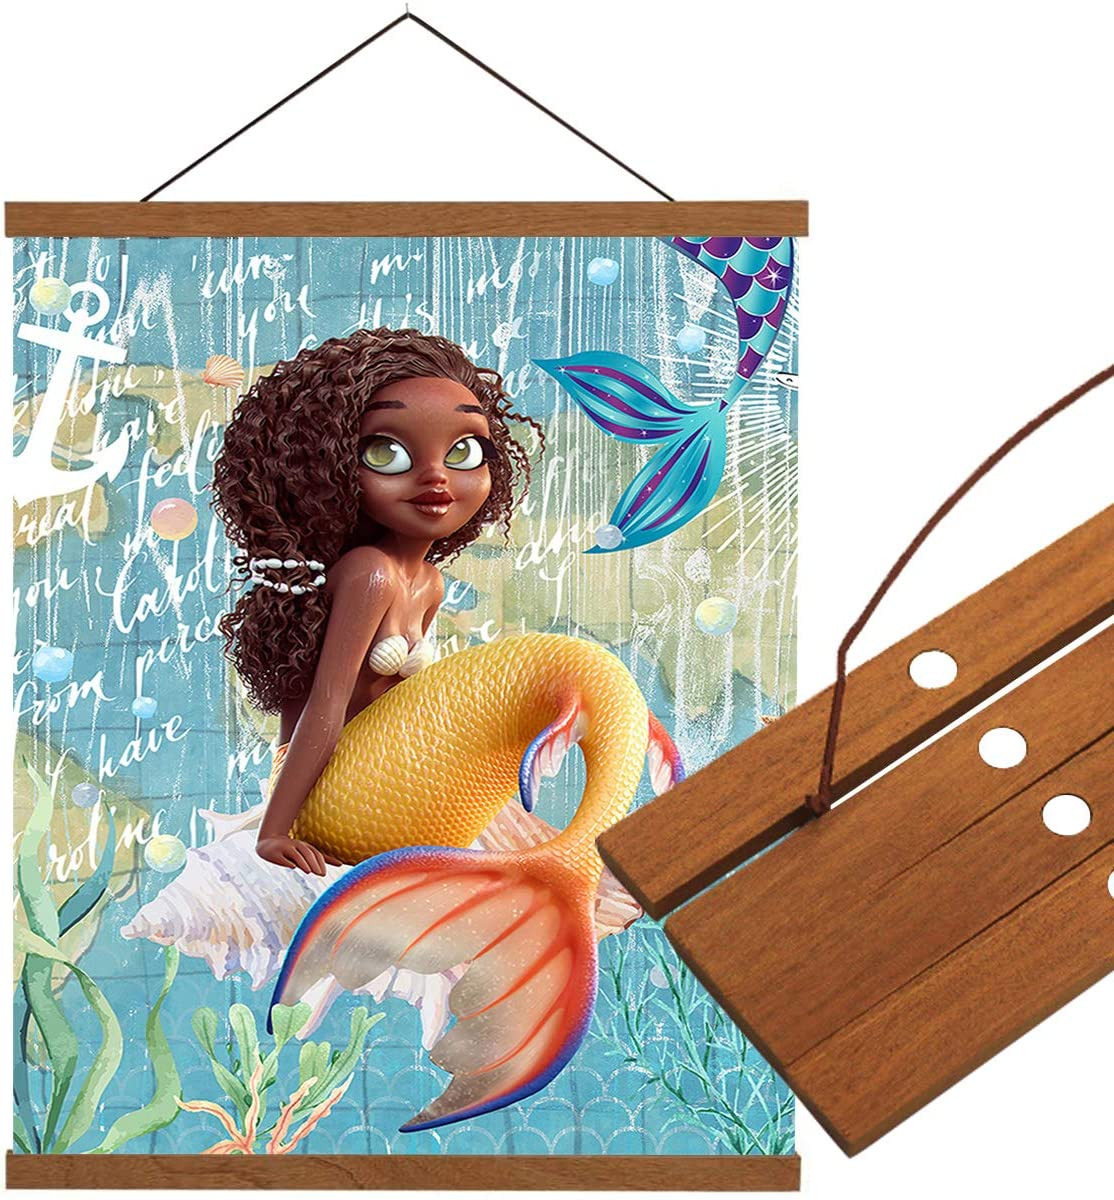 LEO BON Wall Art Canvas Hanging Poster Wood Frame Picture Black Girls Cute Cartoon Mermaid Map Background Wall Hanging Teak Wood for Home Dorm Office 16x28inch